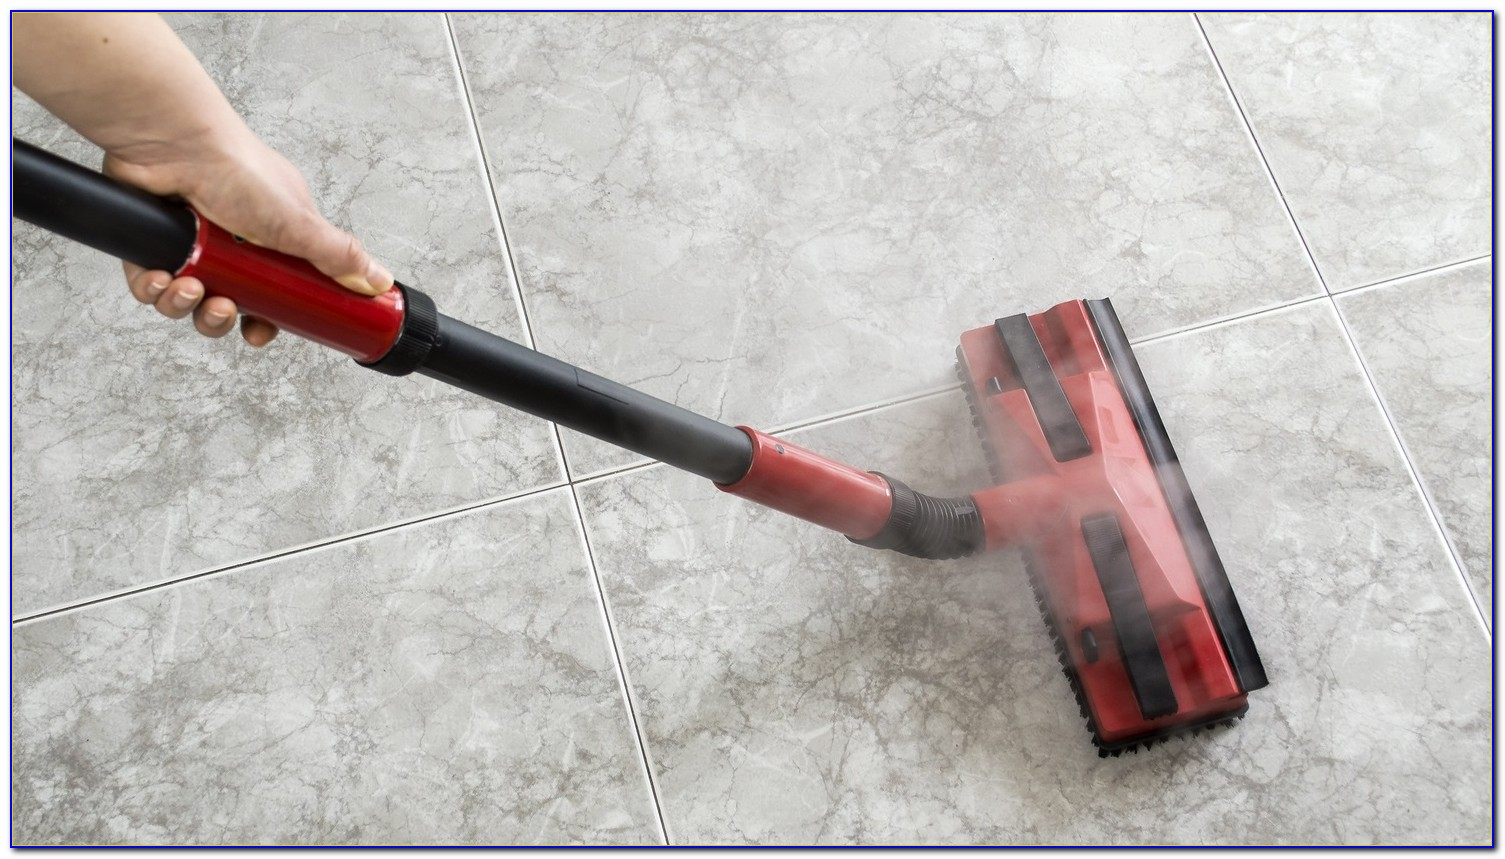 Best Steam Cleaner For Tiles And Ovens